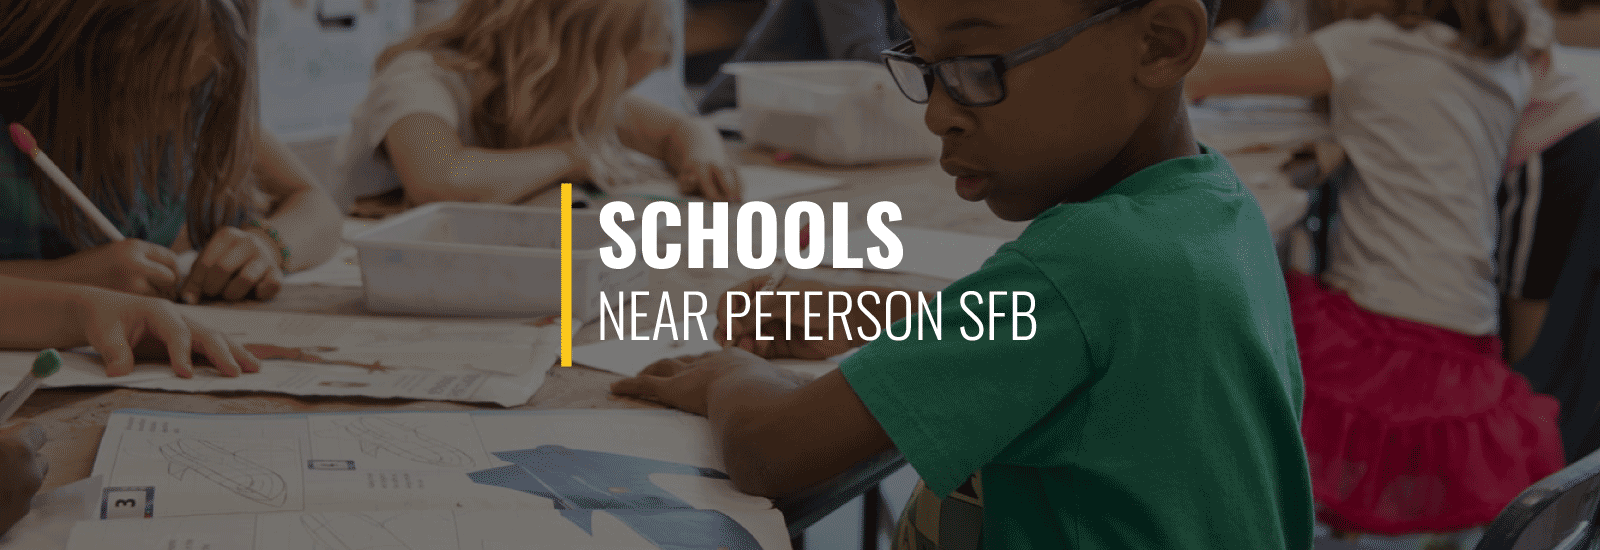 Peterson AFB (Now Peterson Space Force Base) Schools